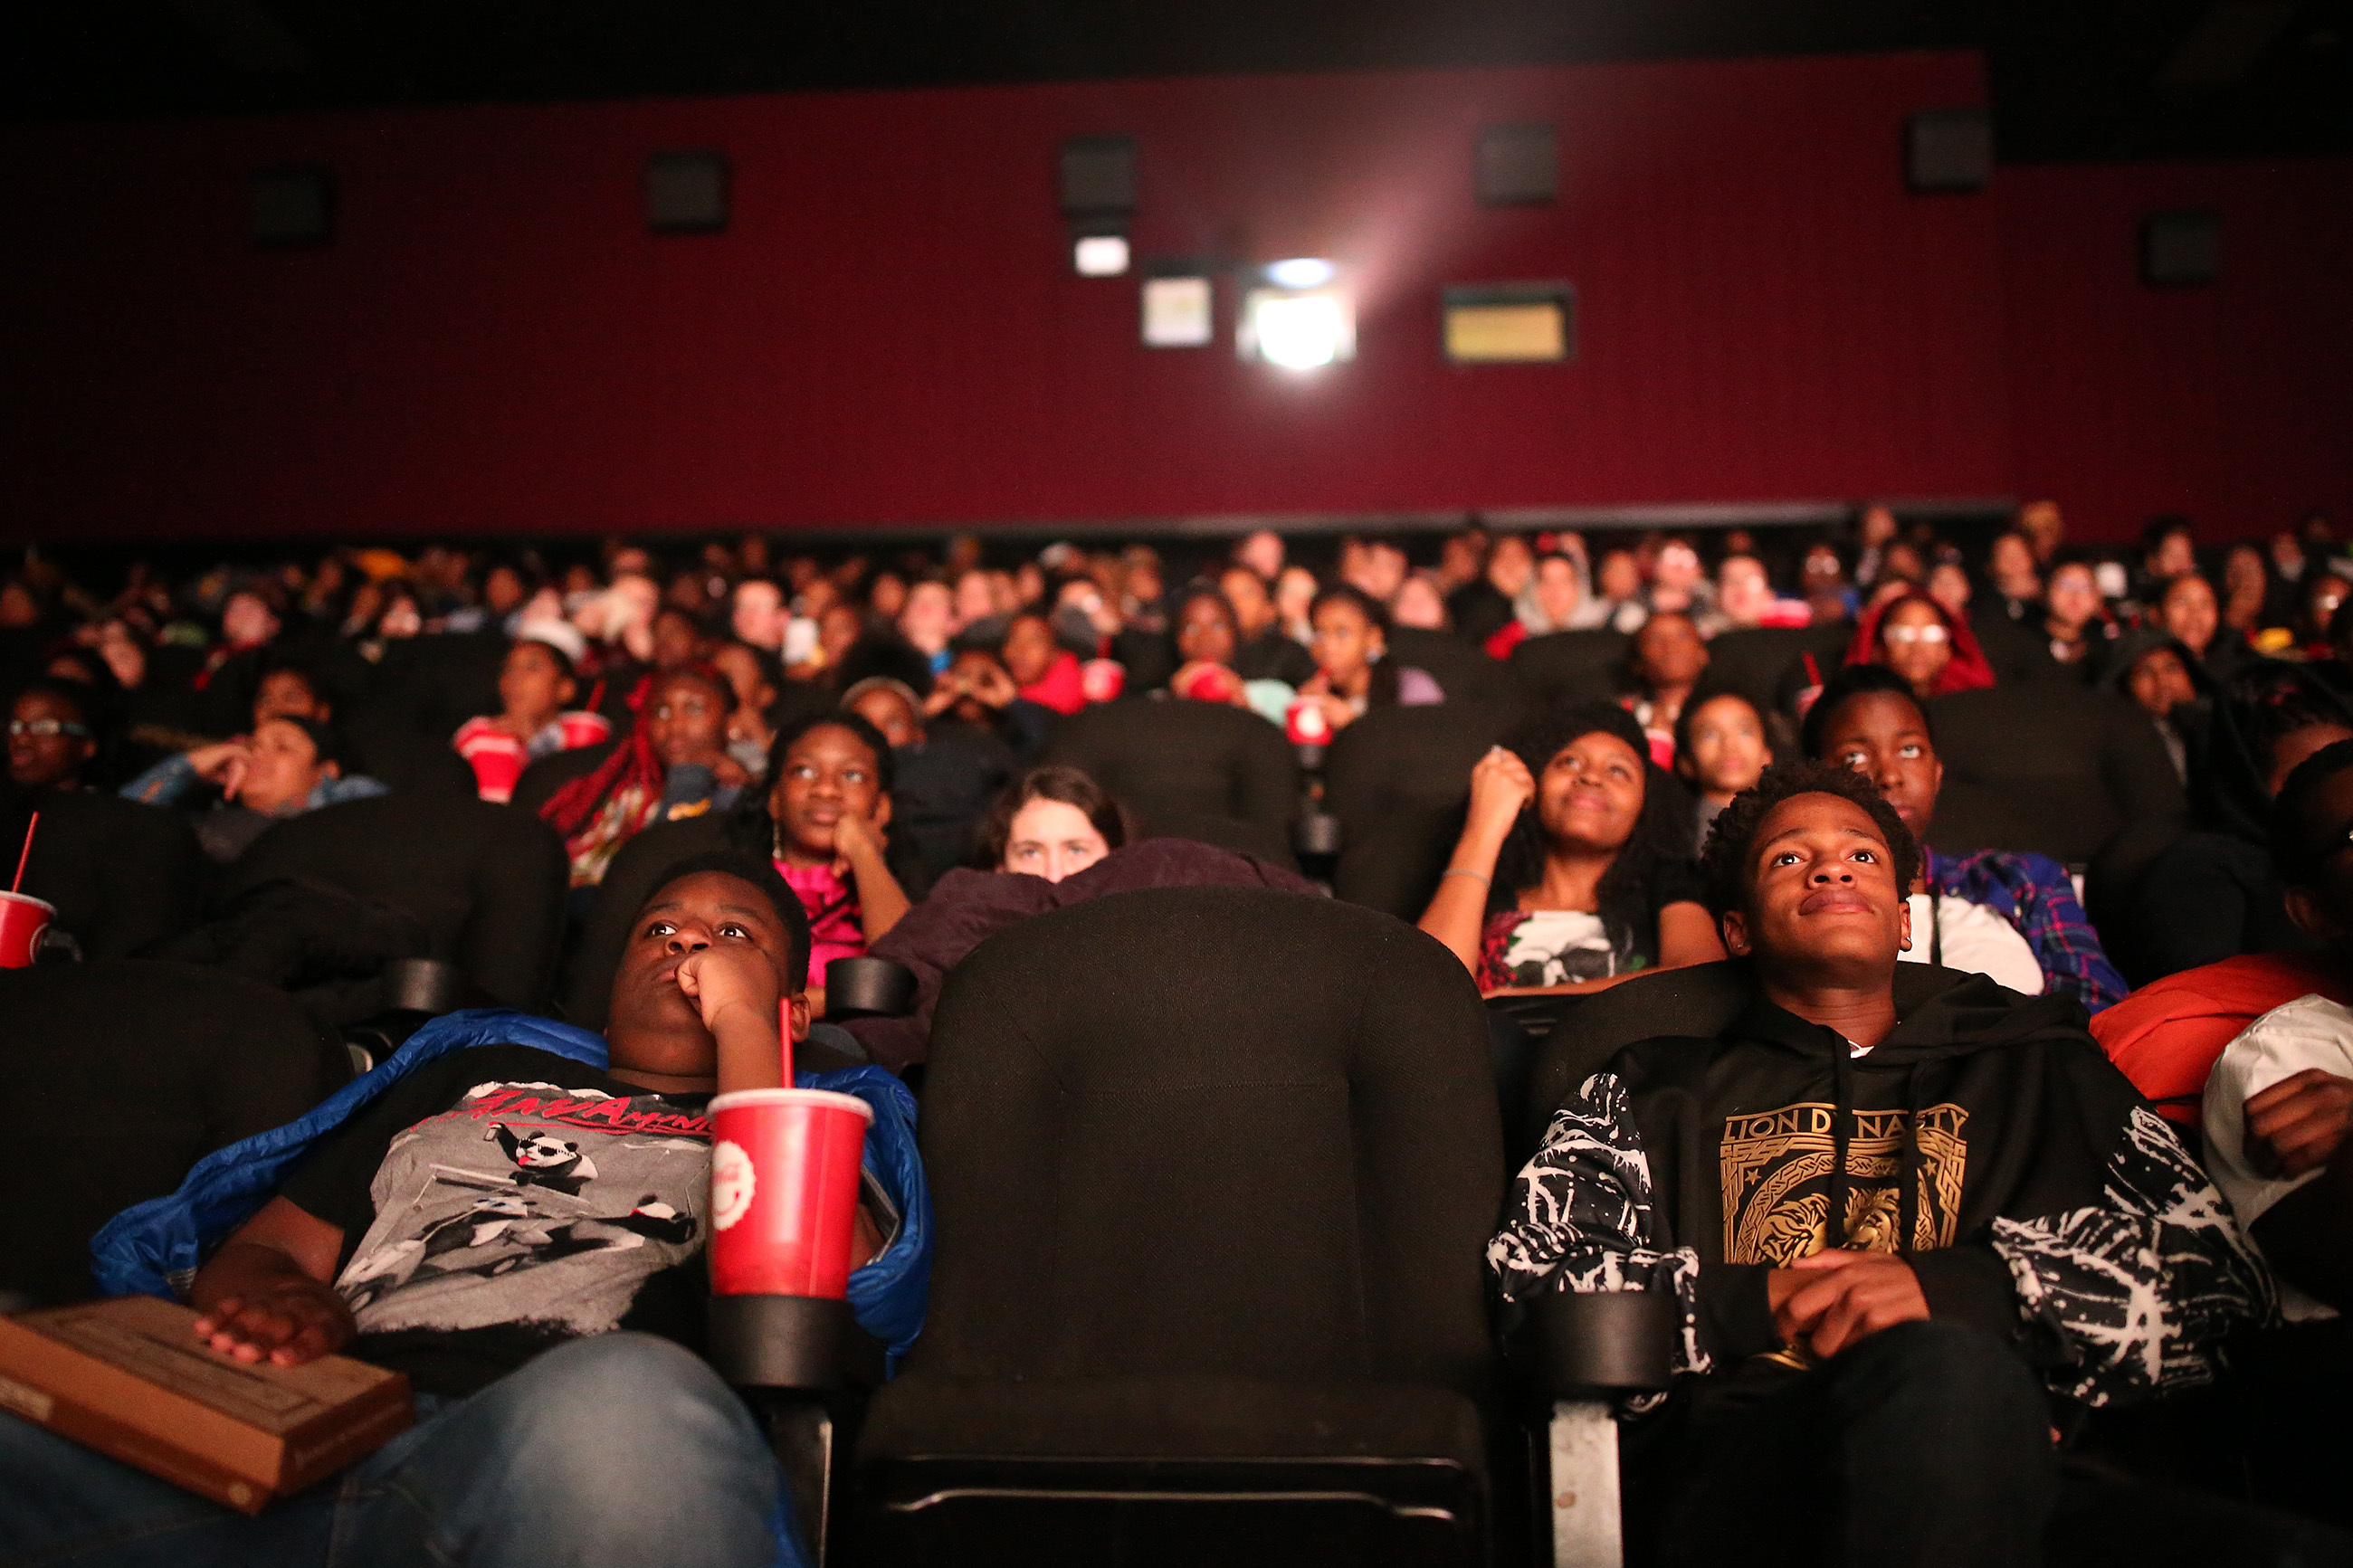 Taejon Harley, left, 14, , and Abdul Dankambany, right, 13, both of Sharon Hill School watch during the Philadelphia Media Network screening of Black Panther at the UA Riverview Plaza Stadium 17 theater in Philadelphia, PA on February 23, 2018. DAVID MAIALETTI / Staff Photographer